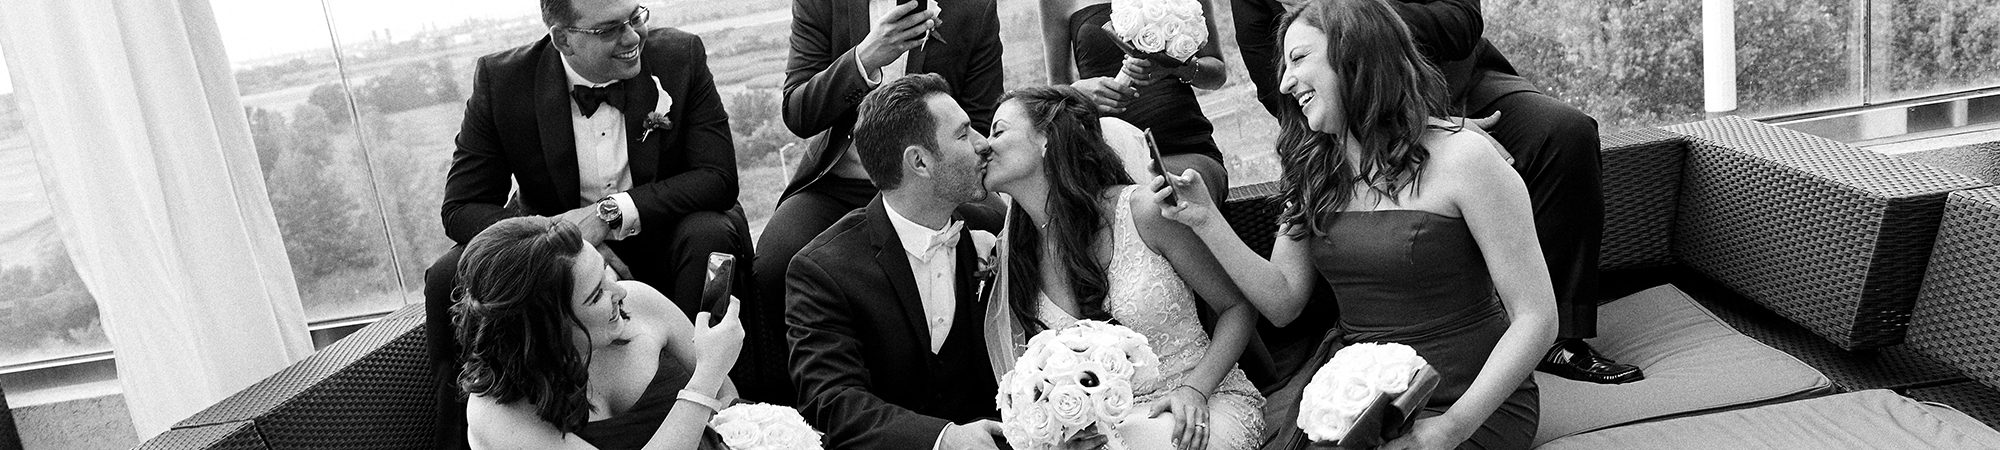 Photo of a married couple kissing around their friends